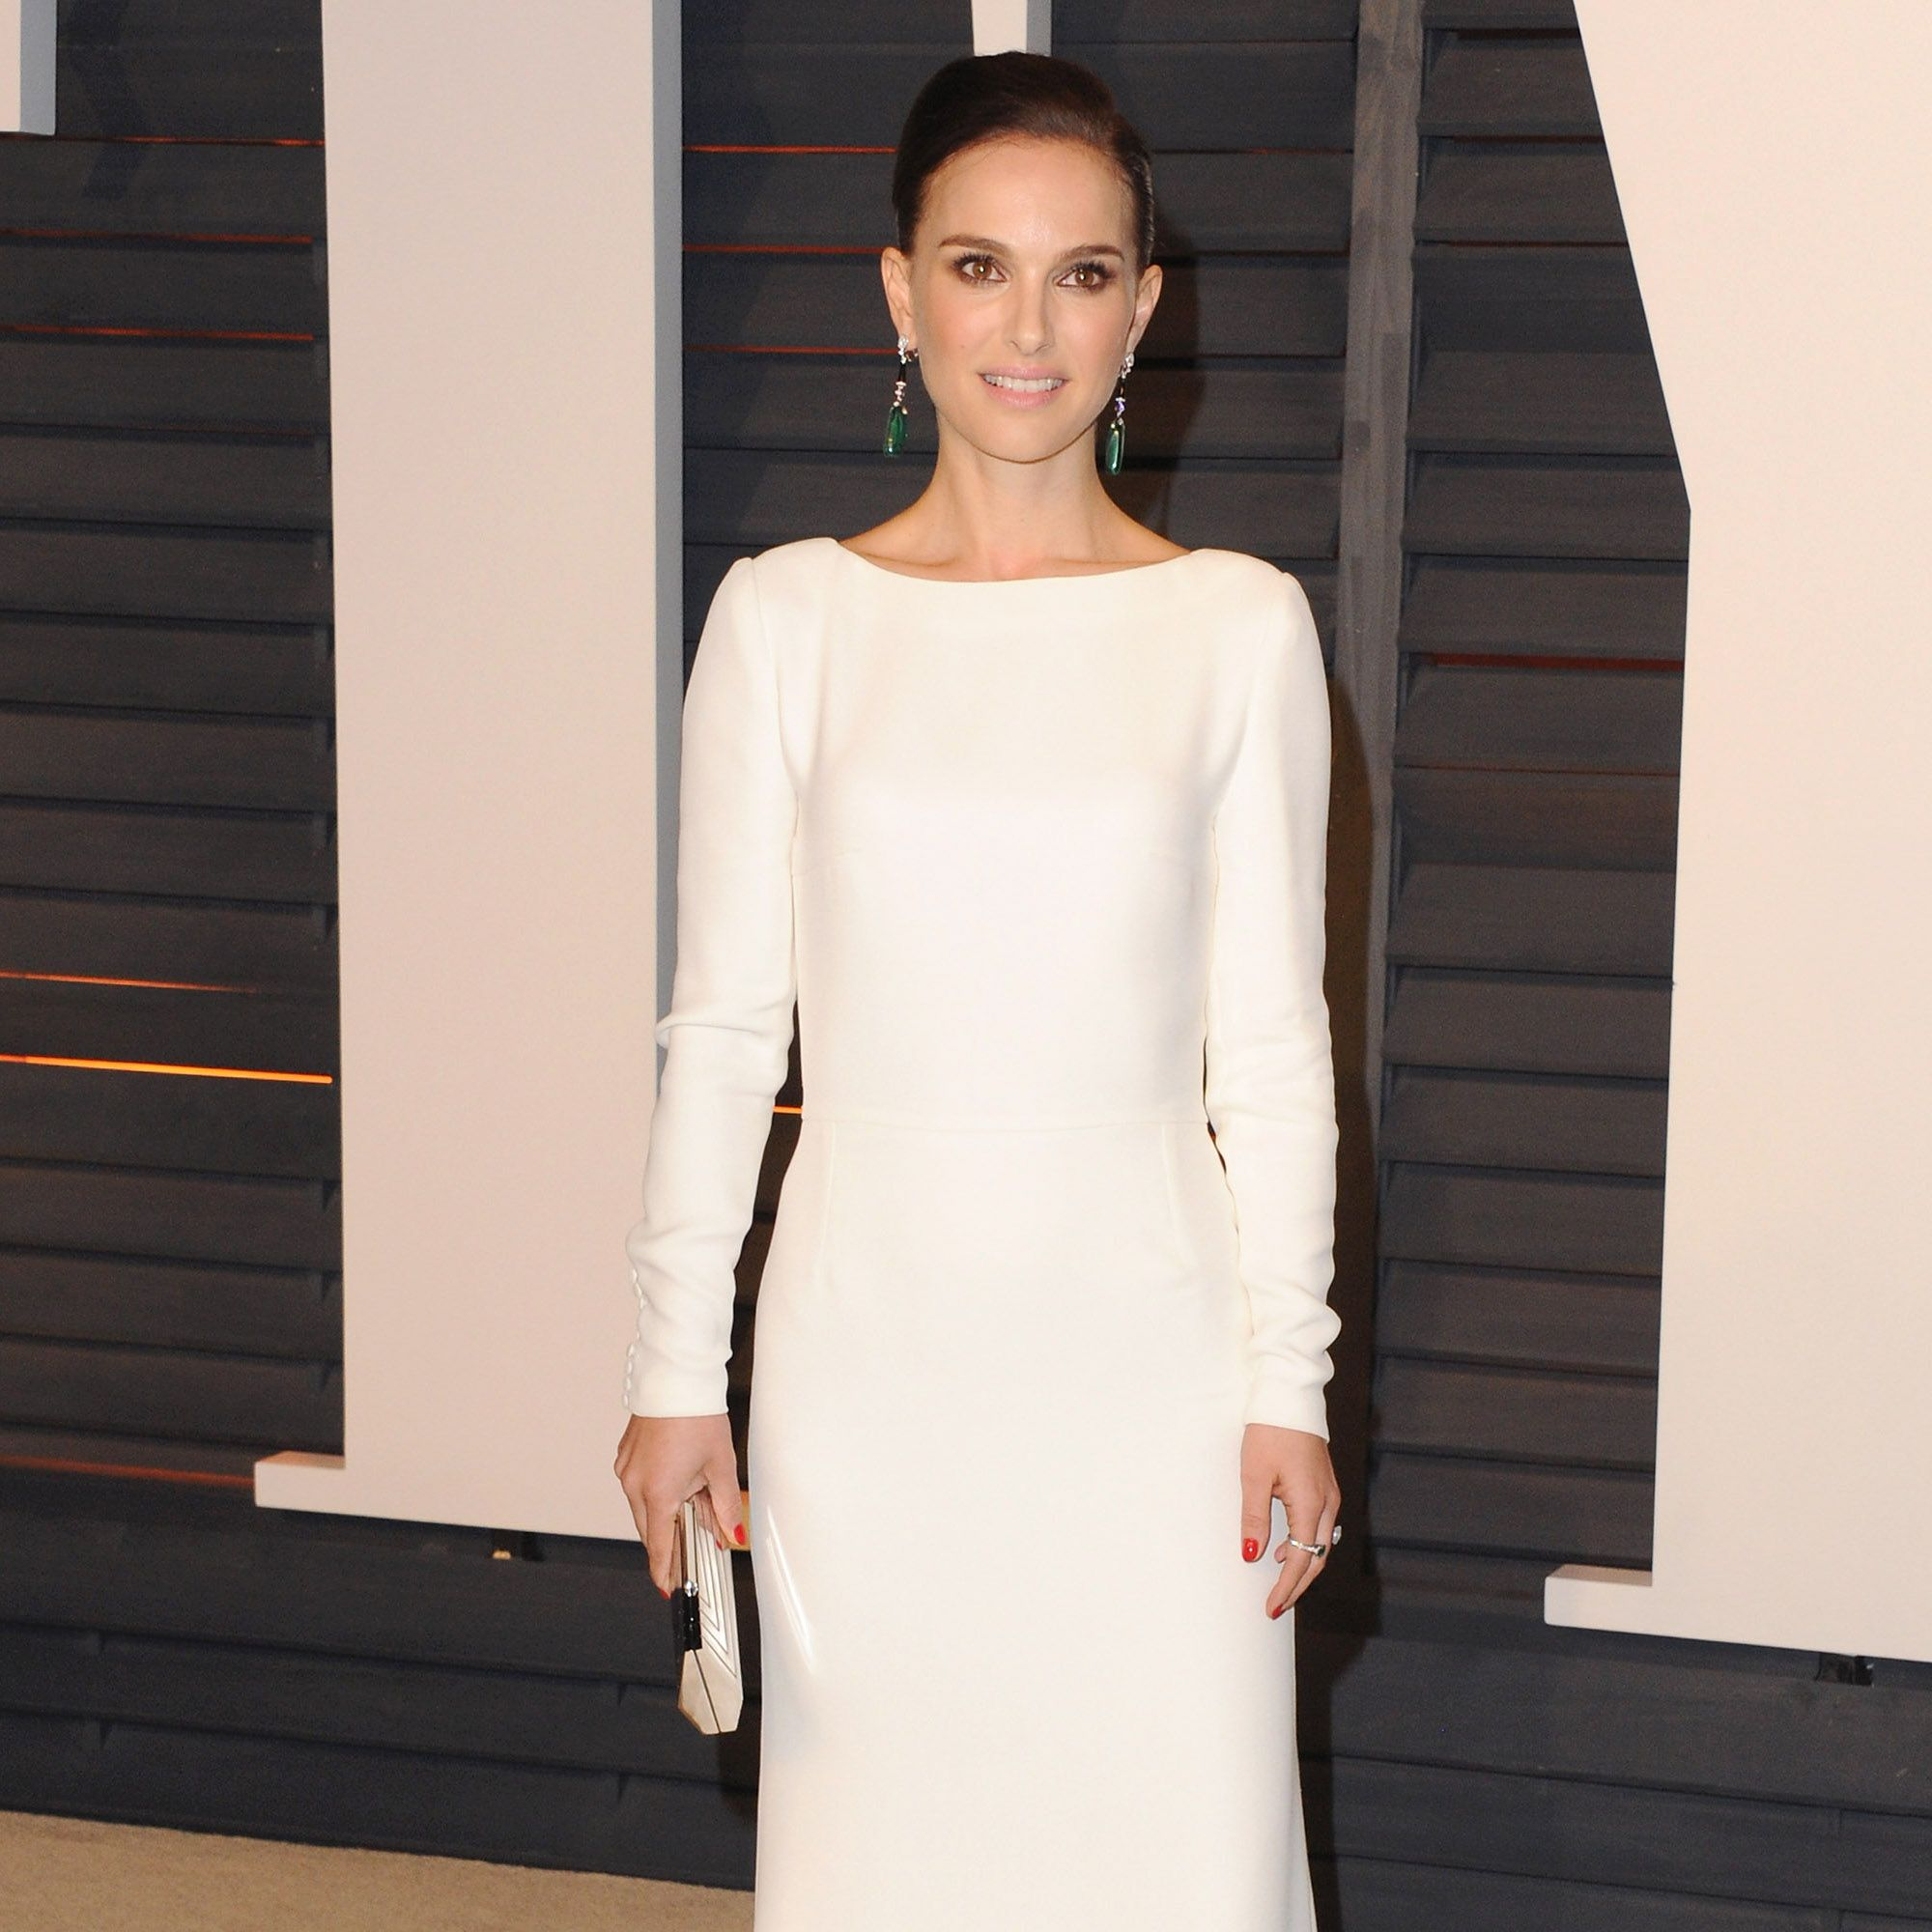 BEVERLY HILLS, CA - FEBRUARY 22:  Actress Natalie Portman arrives at the 2015 Vanity Fair Oscar Party Hosted By Graydon Carter at Wallis Annenberg Center for the Performing Arts on February 22, 2015 in Beverly Hills, California.  (Photo by Jon Kopaloff/FilmMagic)